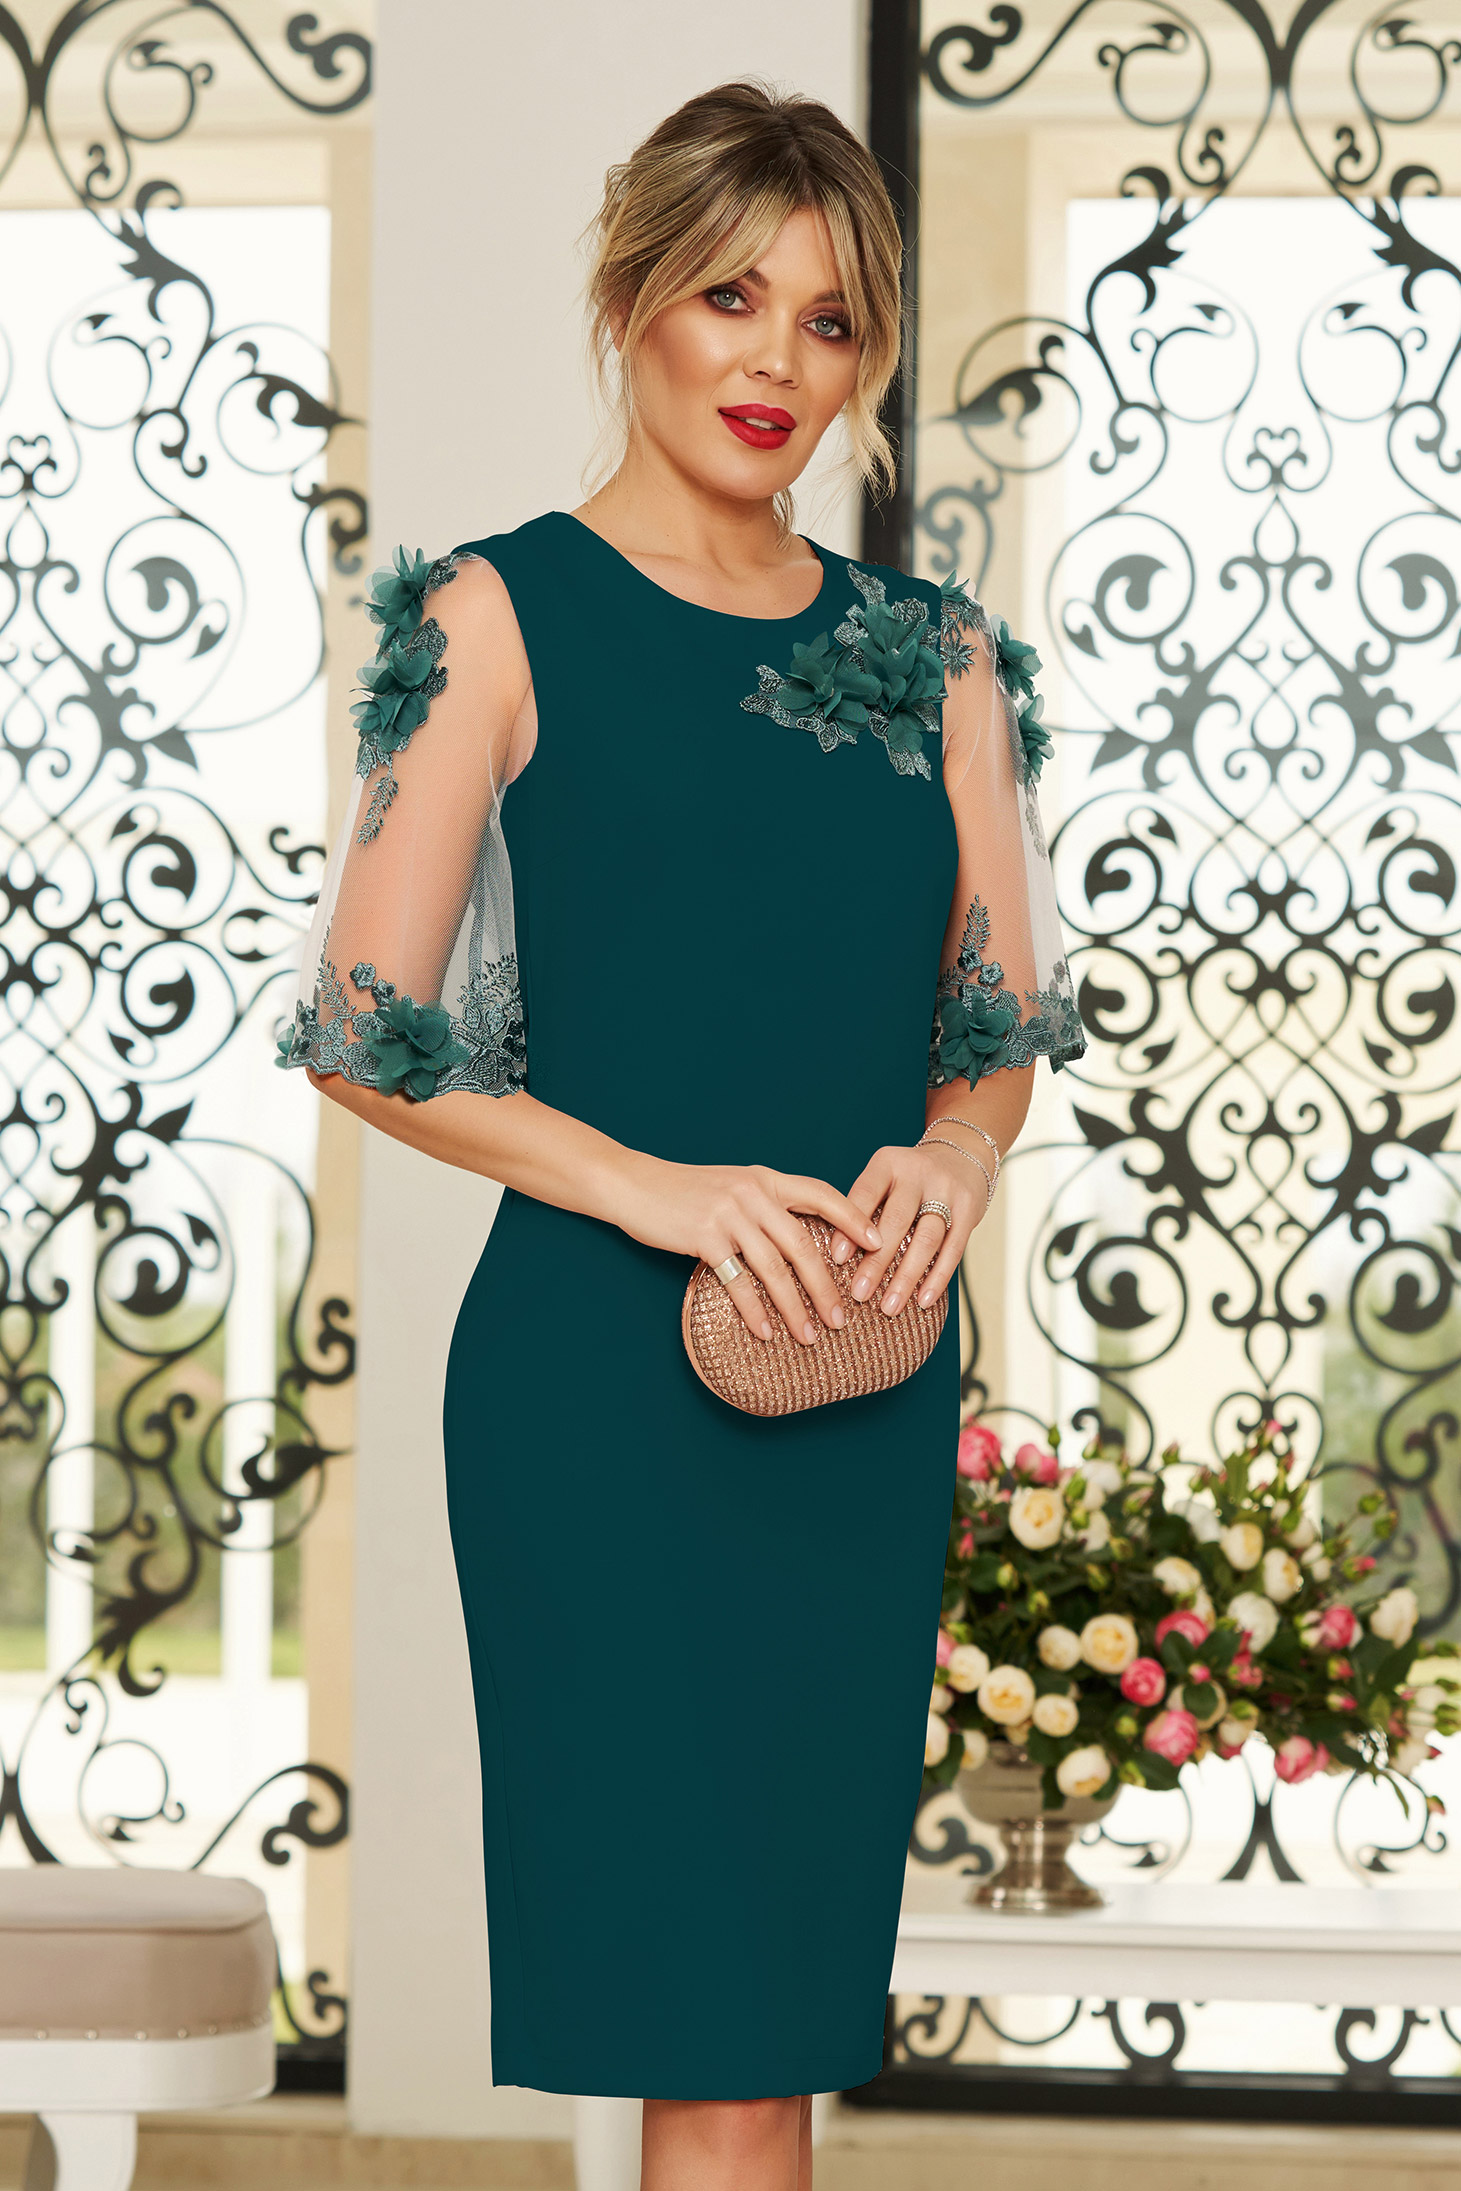 StarShinerS green elegant midi dress with tented cut slightly elastic fabric with floral details handmade details with crystal embellished details